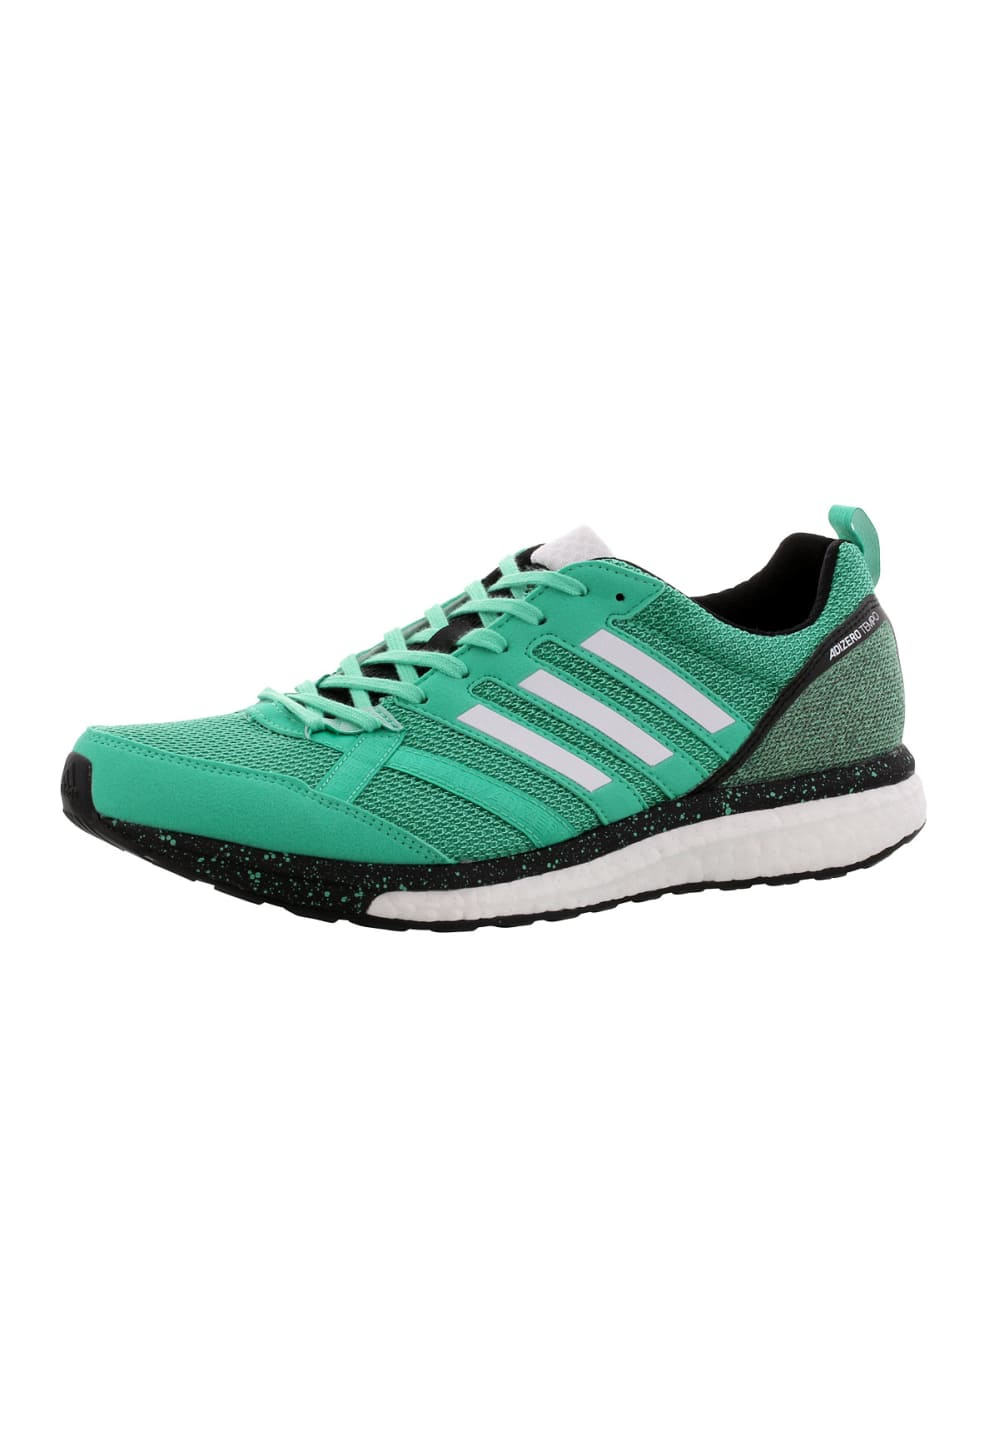 sale retailer 6bc78 218c5 adidas adiZero Tempo 9 - Running shoes for Men - Green